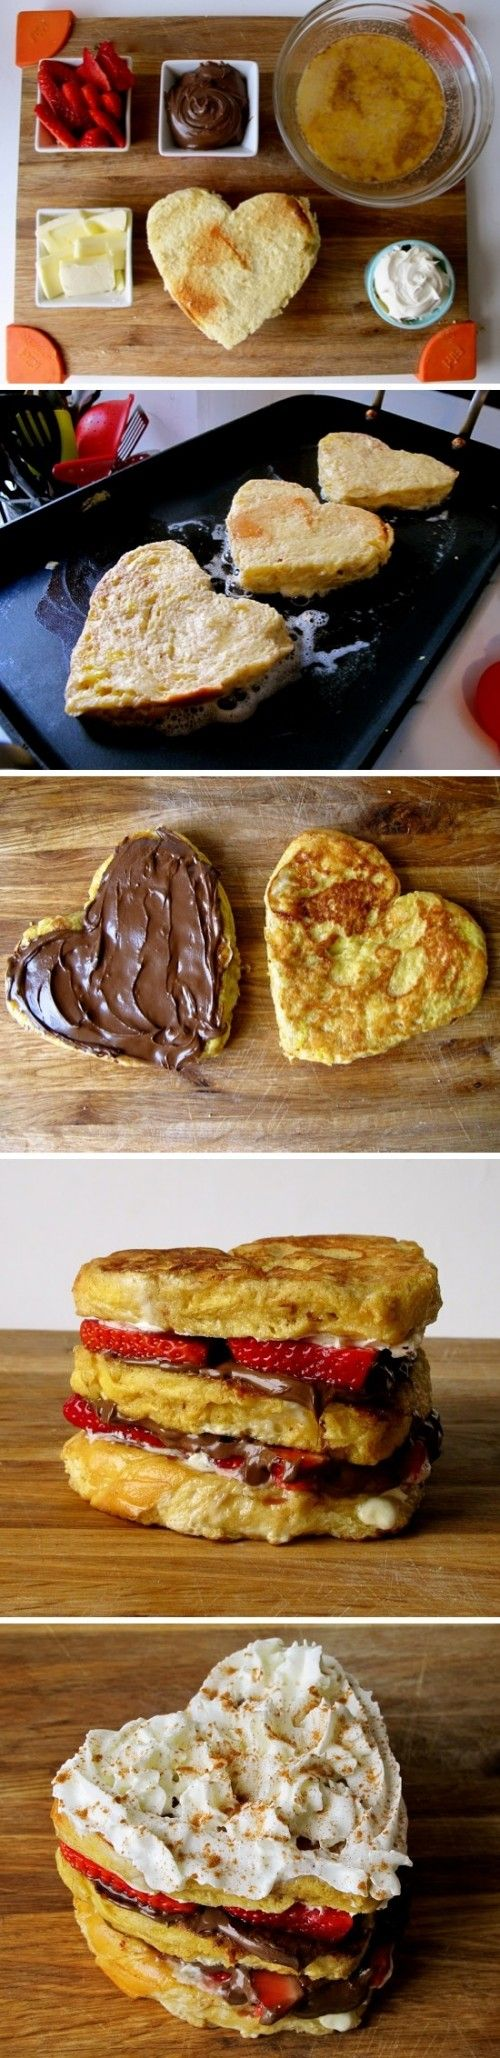 Nutella and Strawberry Stuffed French Toast (Heart Shaped)